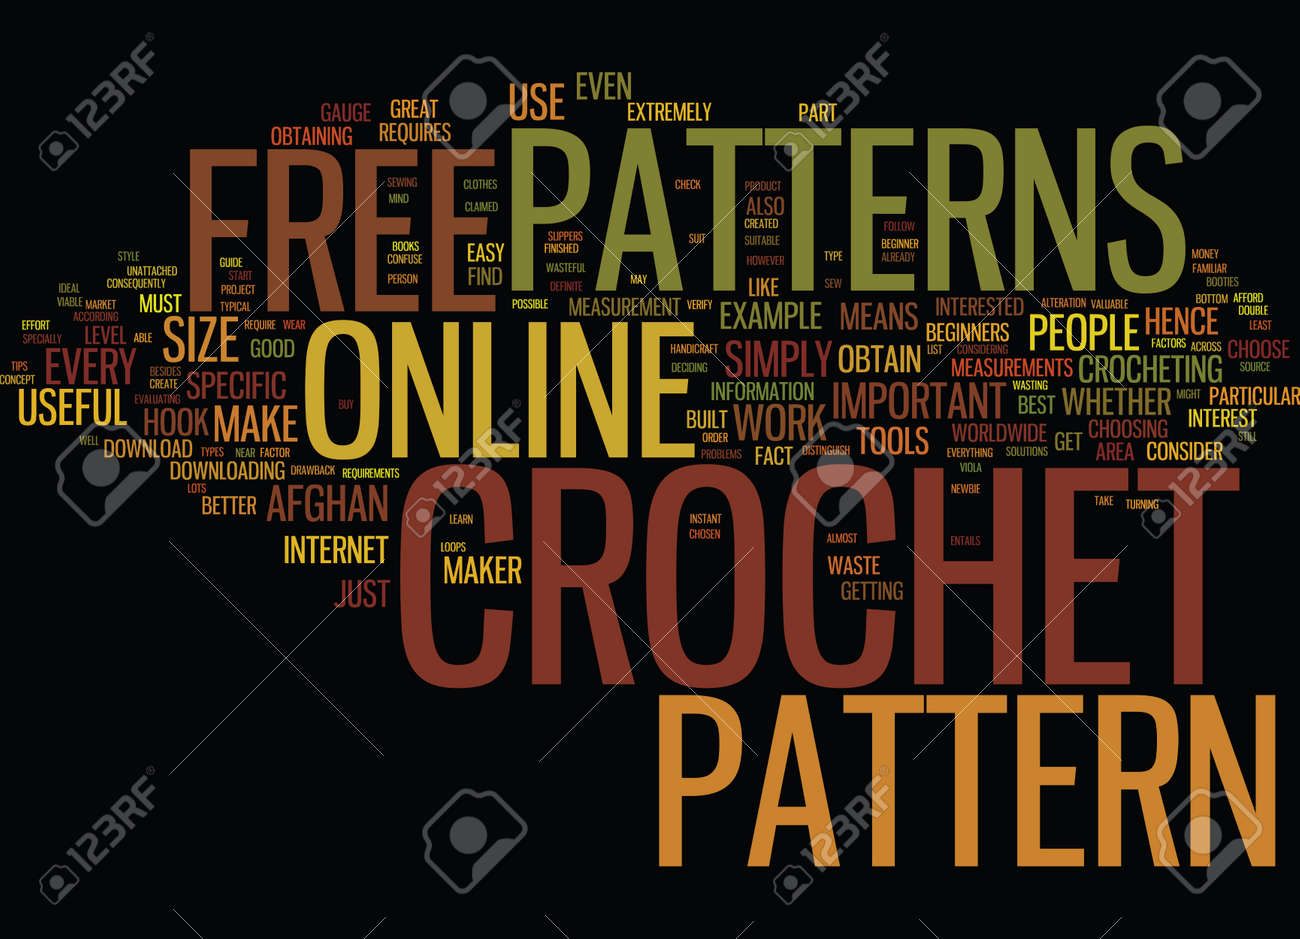 FREE ONLINE CROCHET PATTERNS Text Background Word Cloud Concept